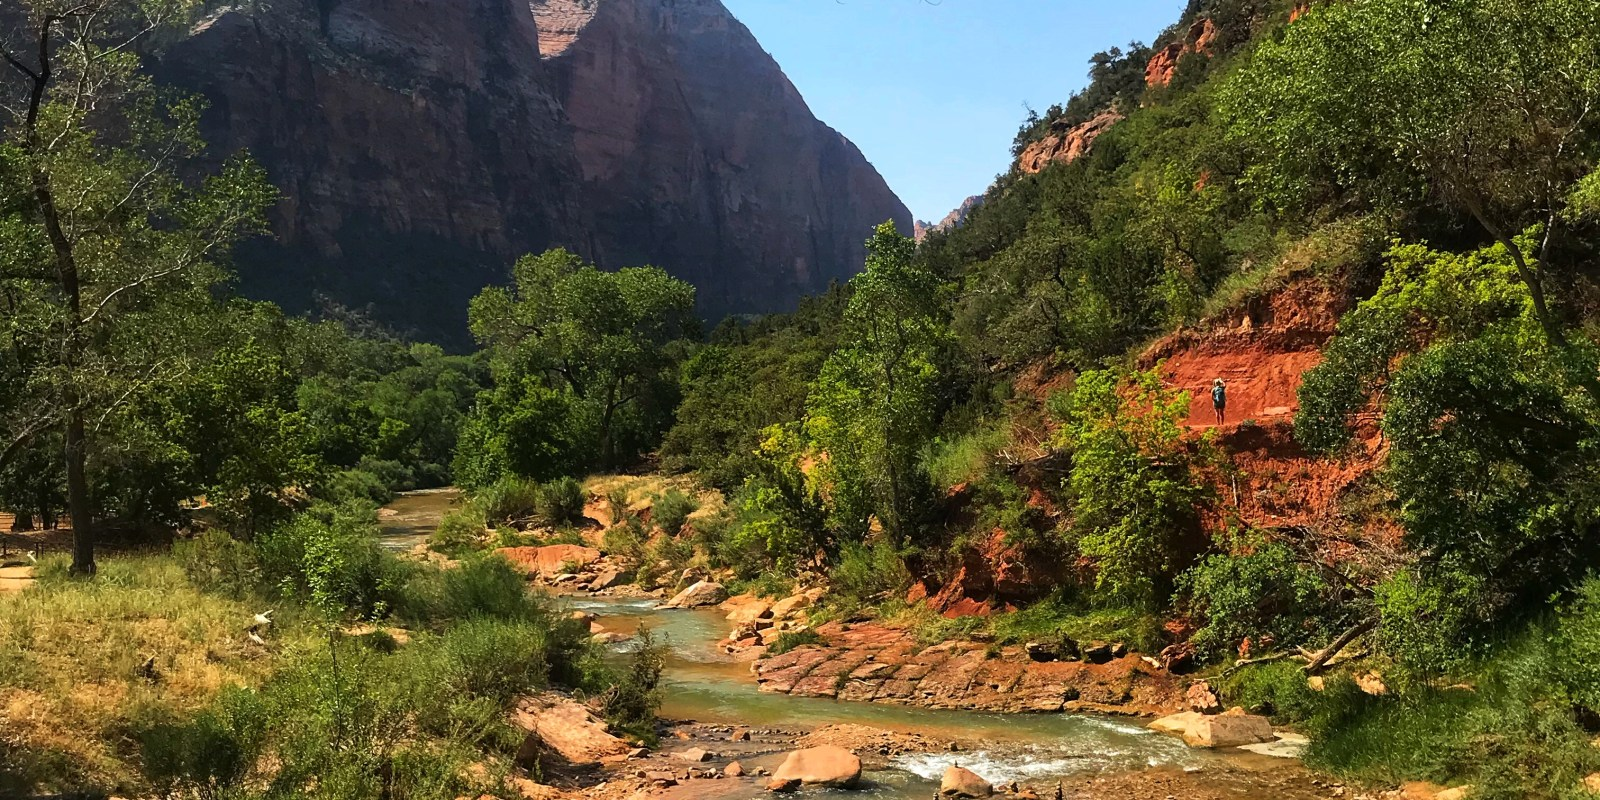 THE VIRIGN RIVER AT ZION NATIONAL PARK